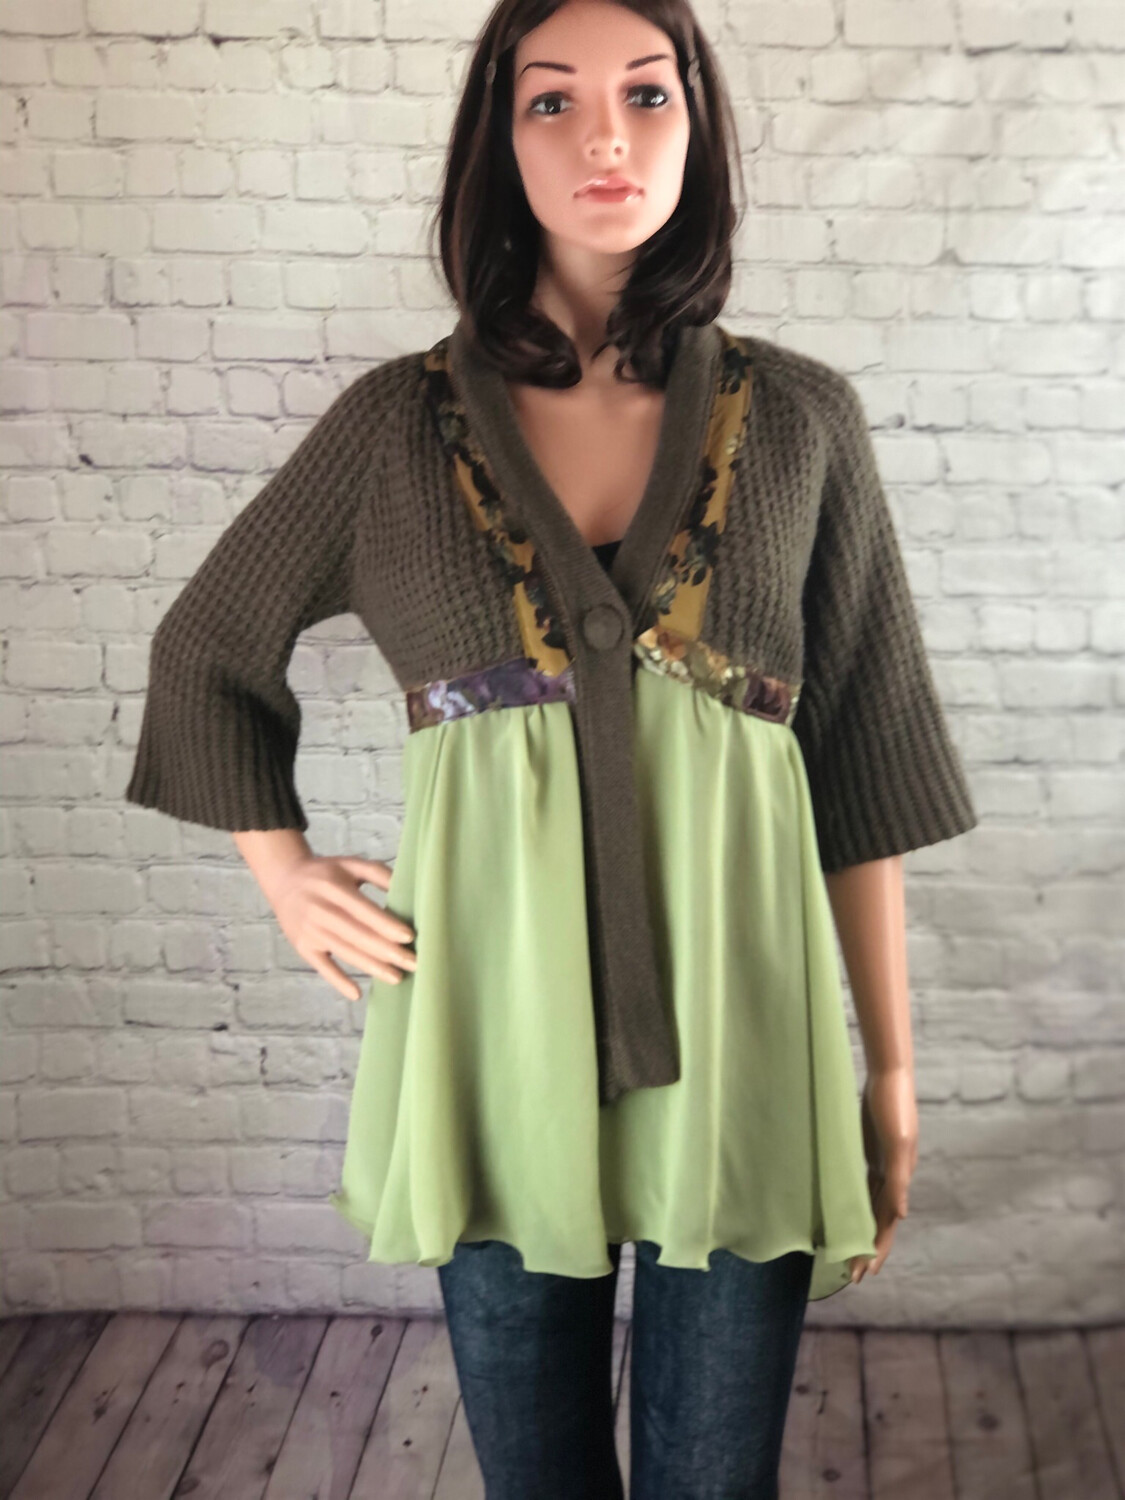 Upcycled Recycled Eco Friendly S Threads Cardigan Sweater Sustainable Fashion Size M / L